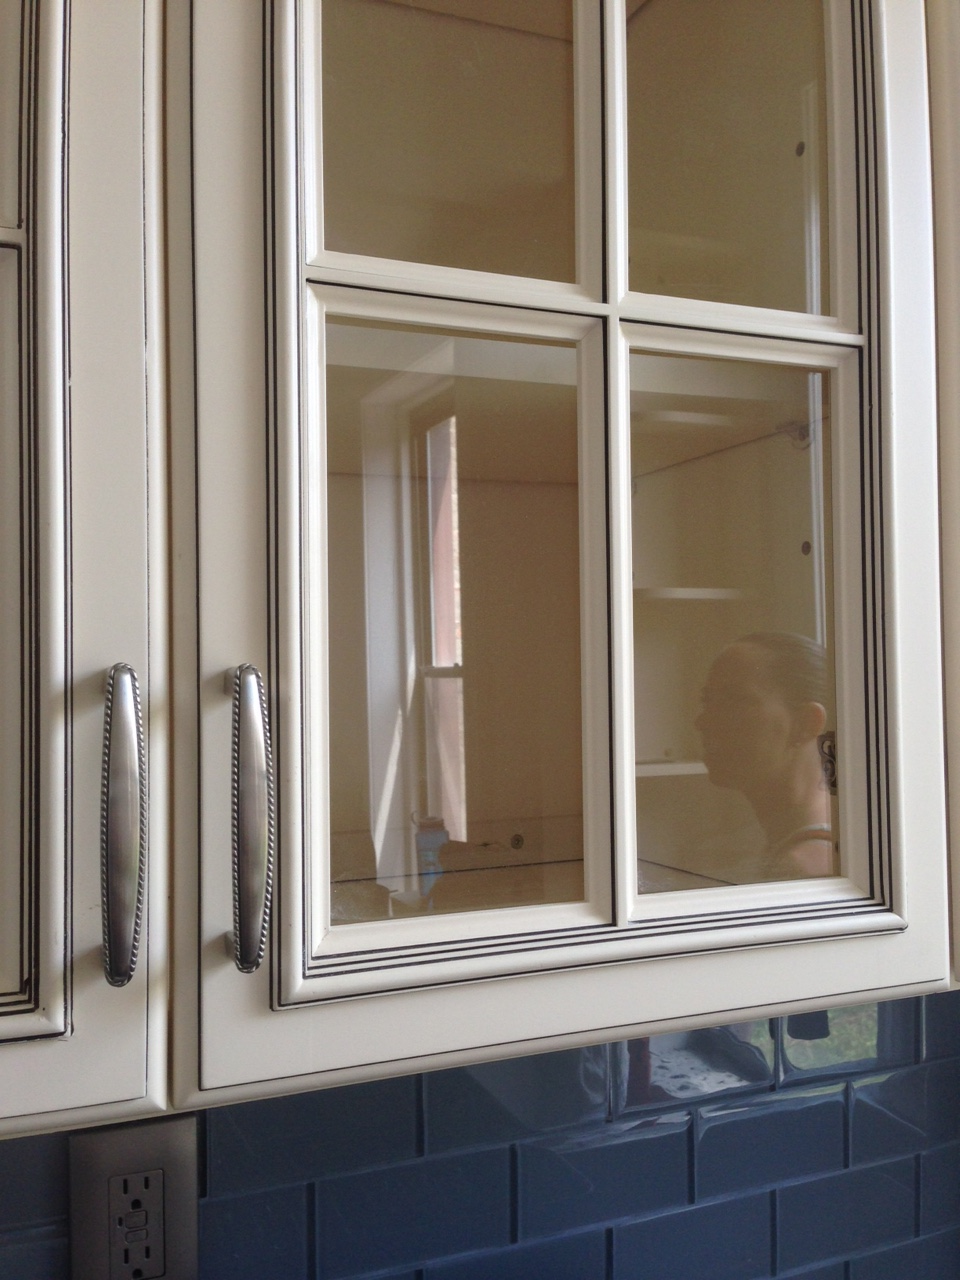 Excuse the reflection of our building manager, but how amazing are these cabinets?